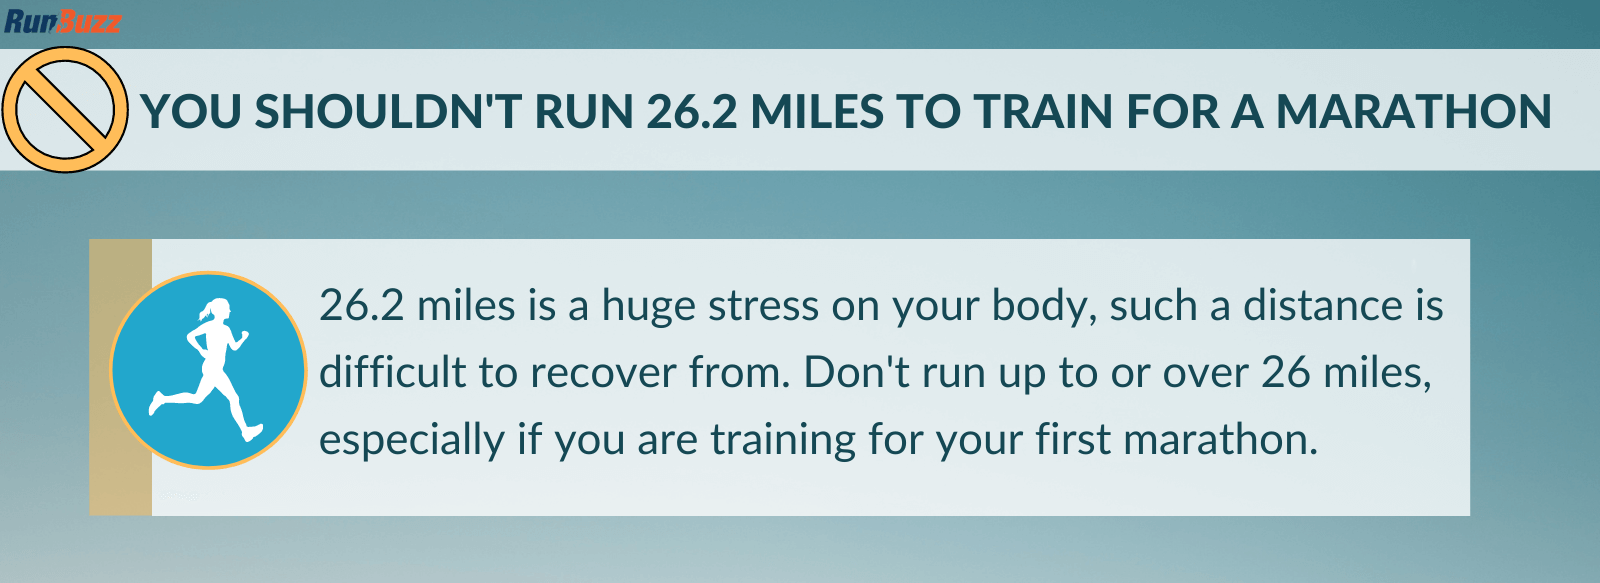 You-Shouldnt-Run-26.2-Miles-to-Train-For-A-Marathon